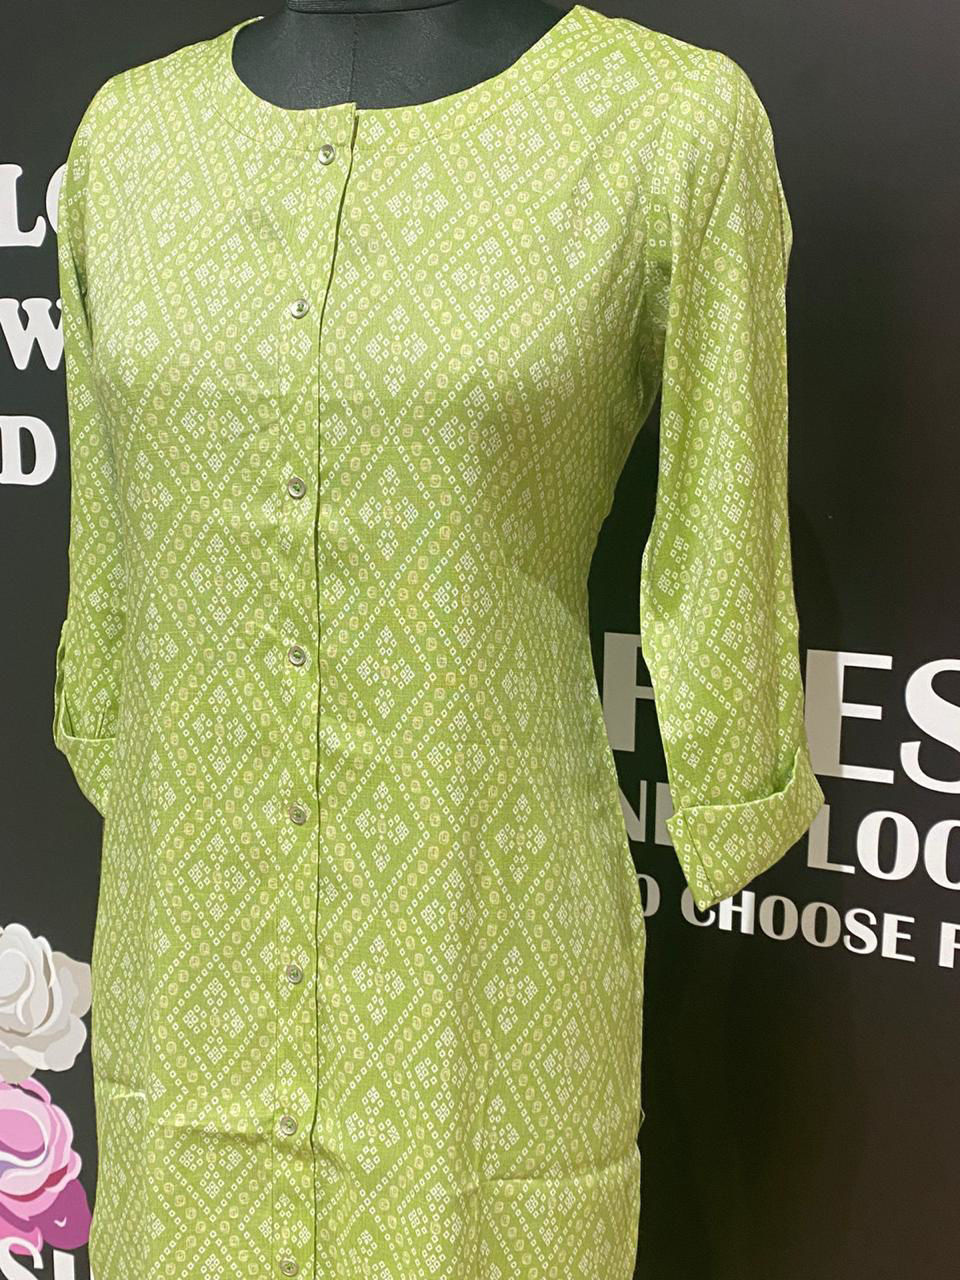 Picture of Printed Cotton Bandhni Tunic - Green